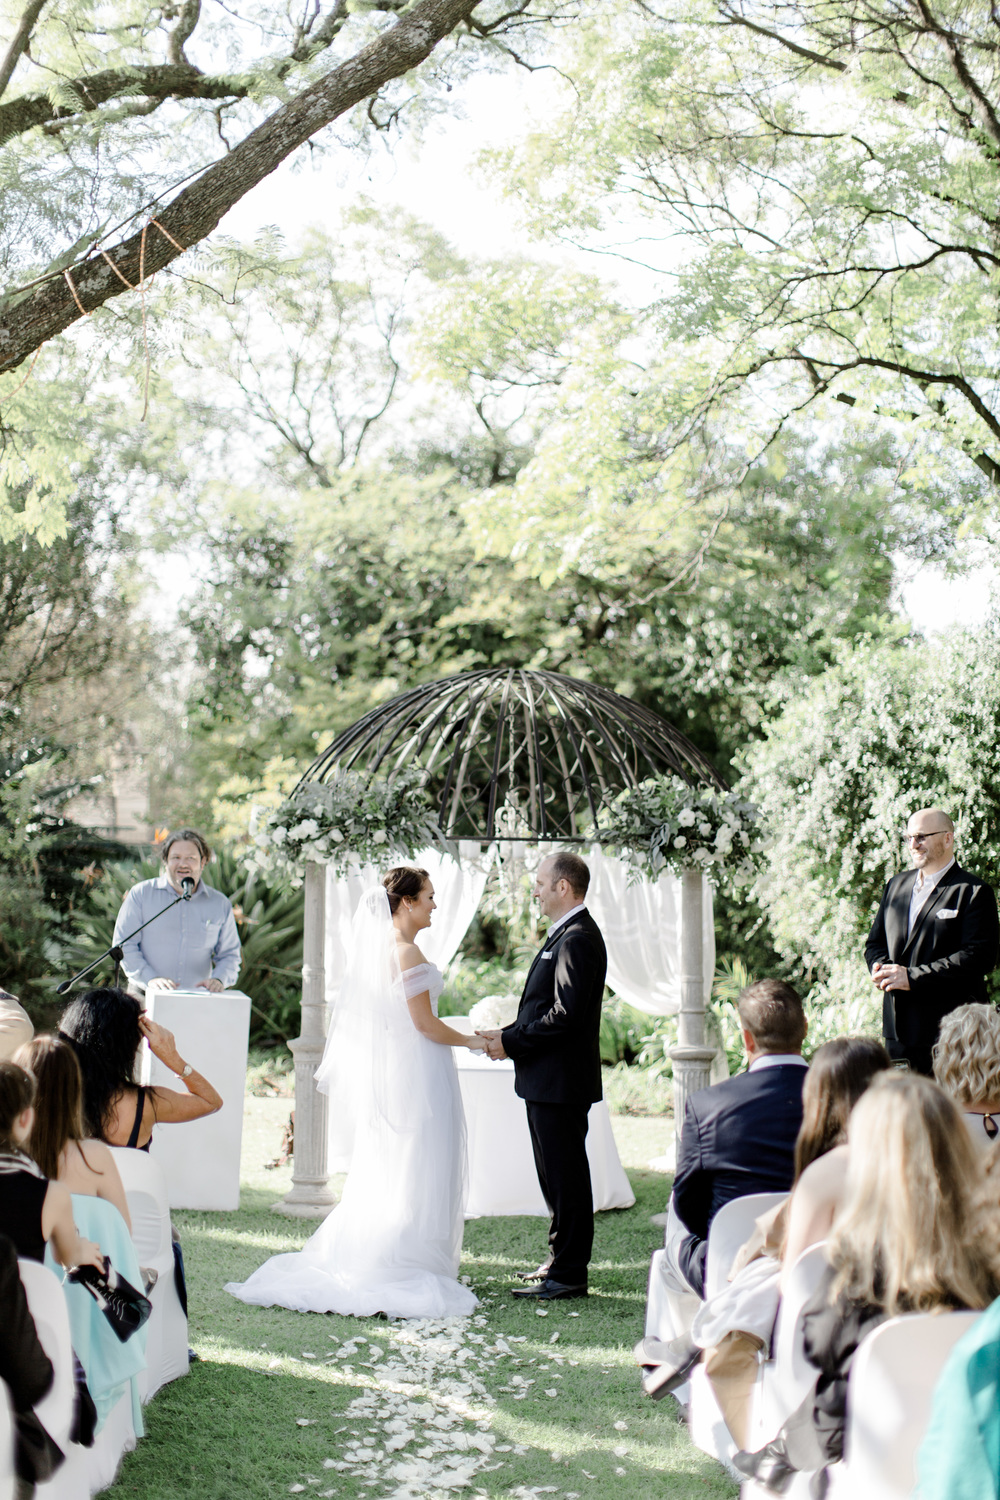 long Meadow johannesburg wedding venue photographer_049.jpg